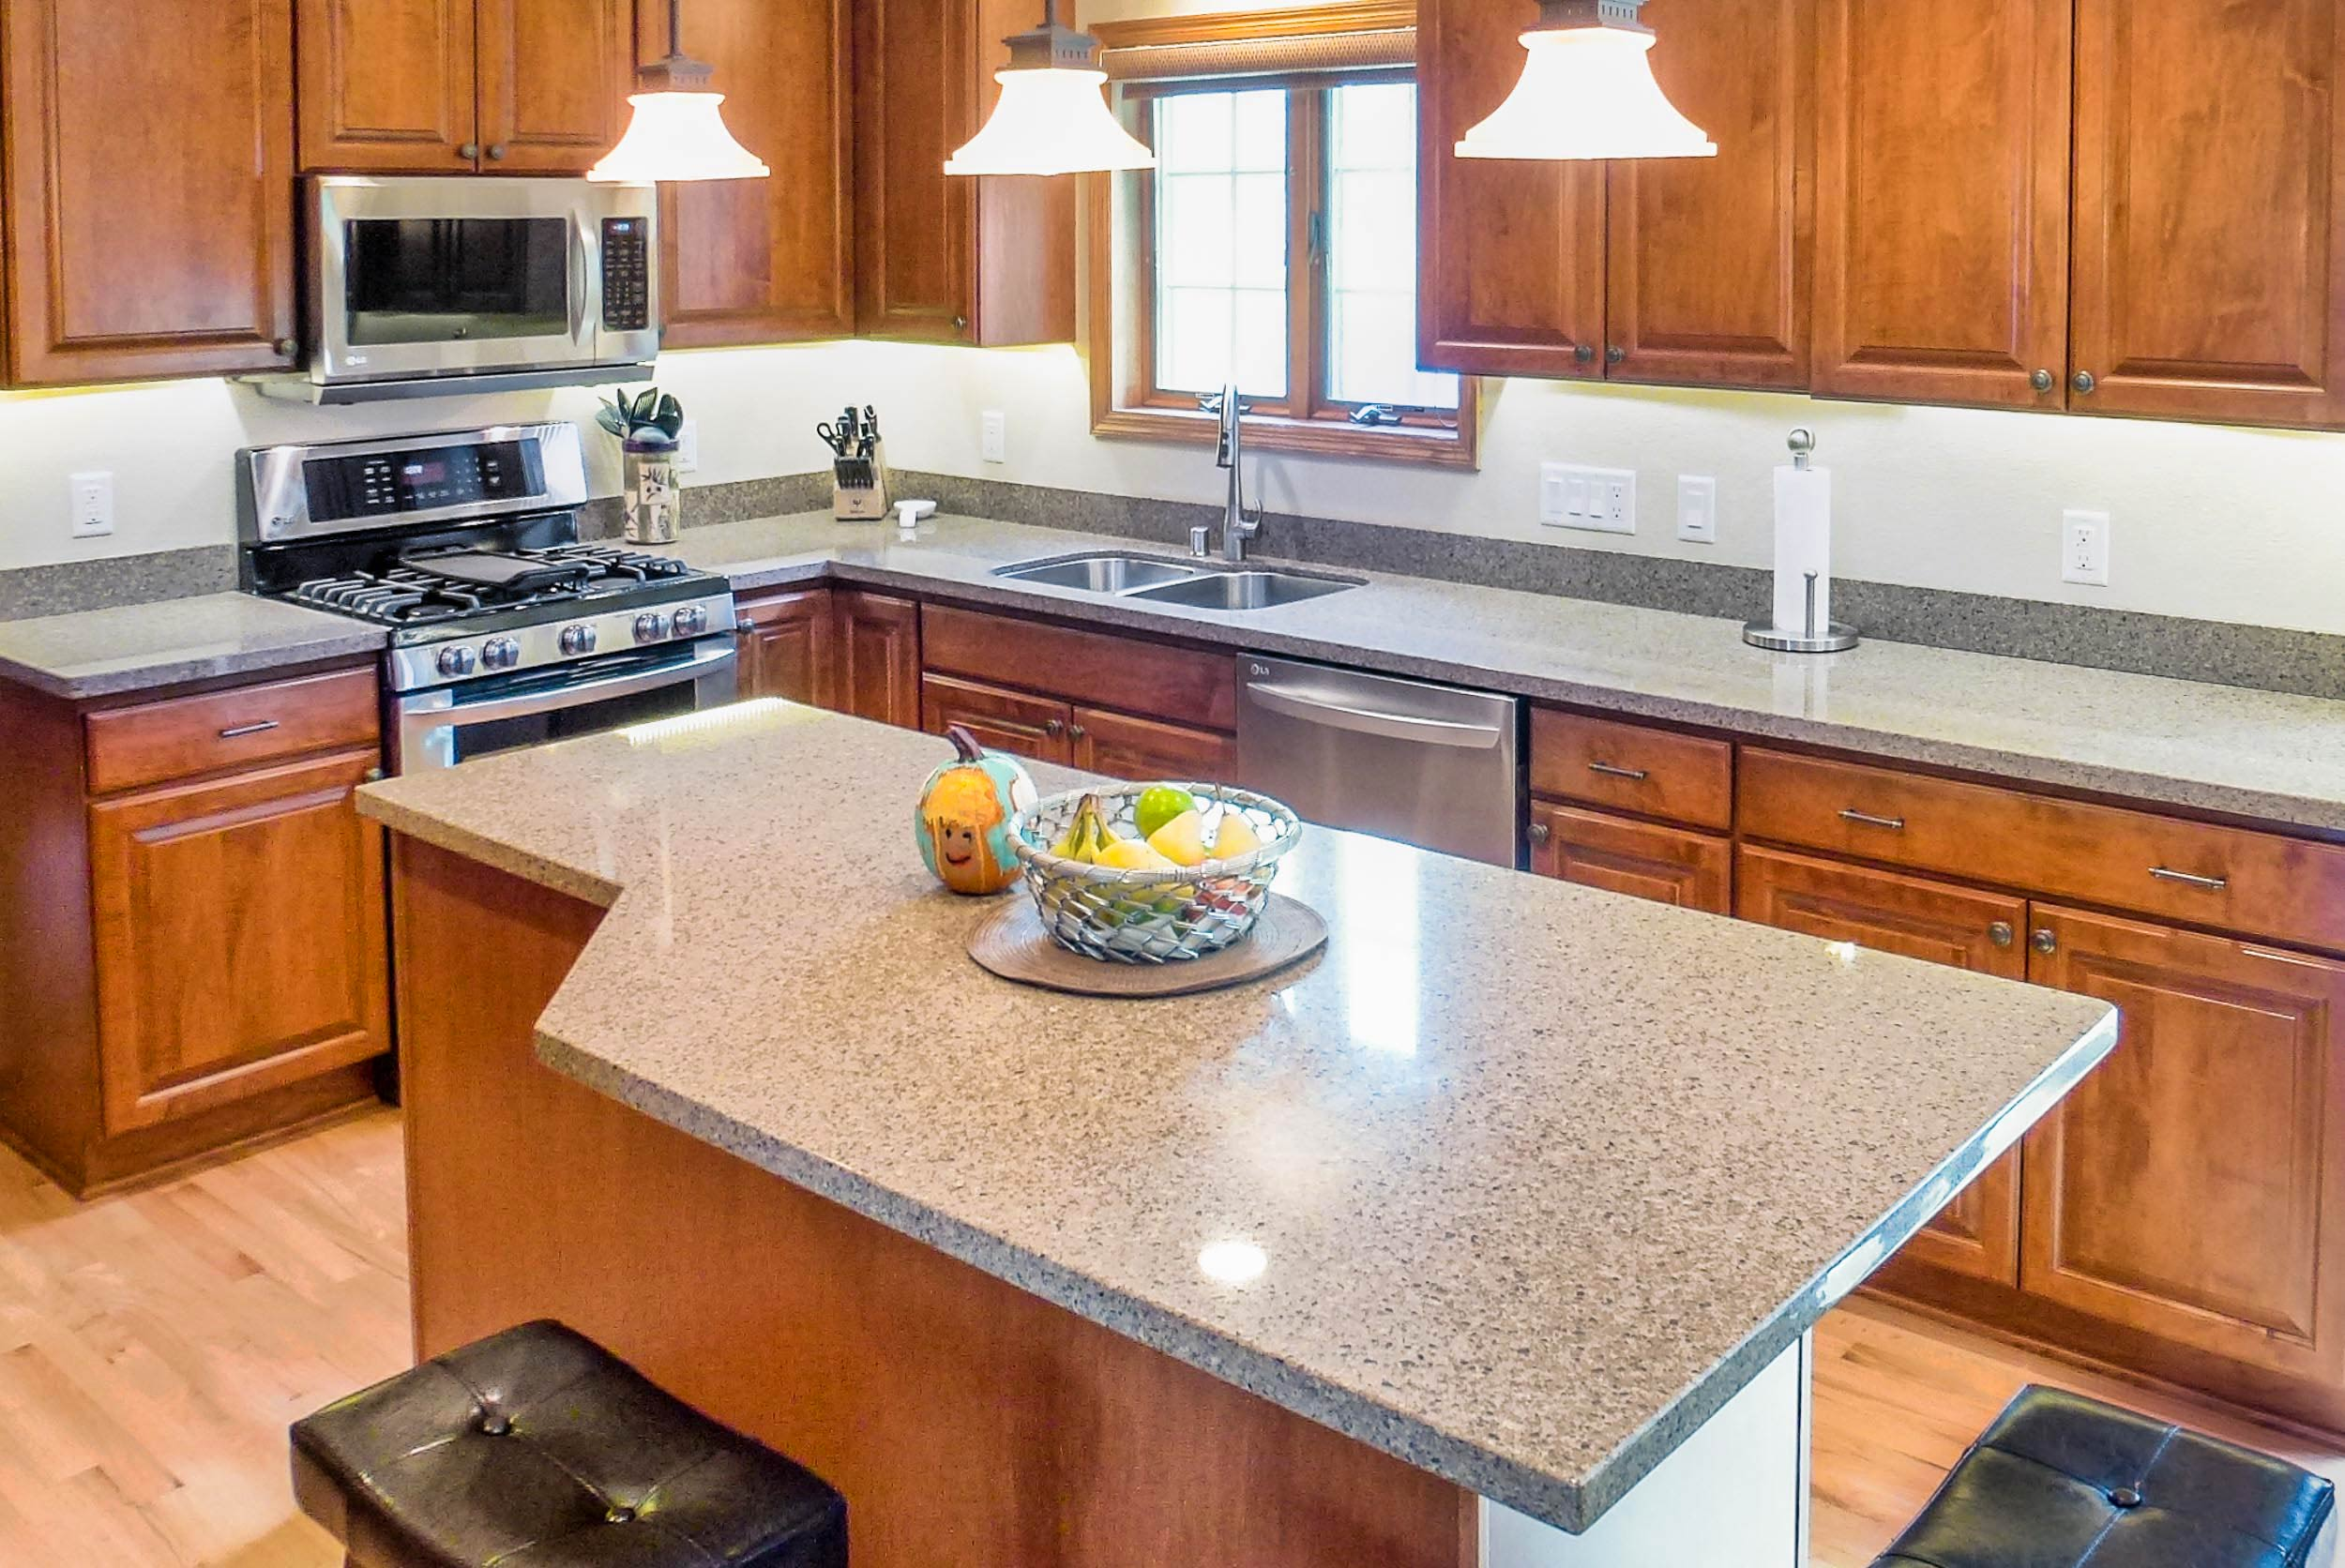 The countertop is Viatera Quartz, in the Solar Canyon color.